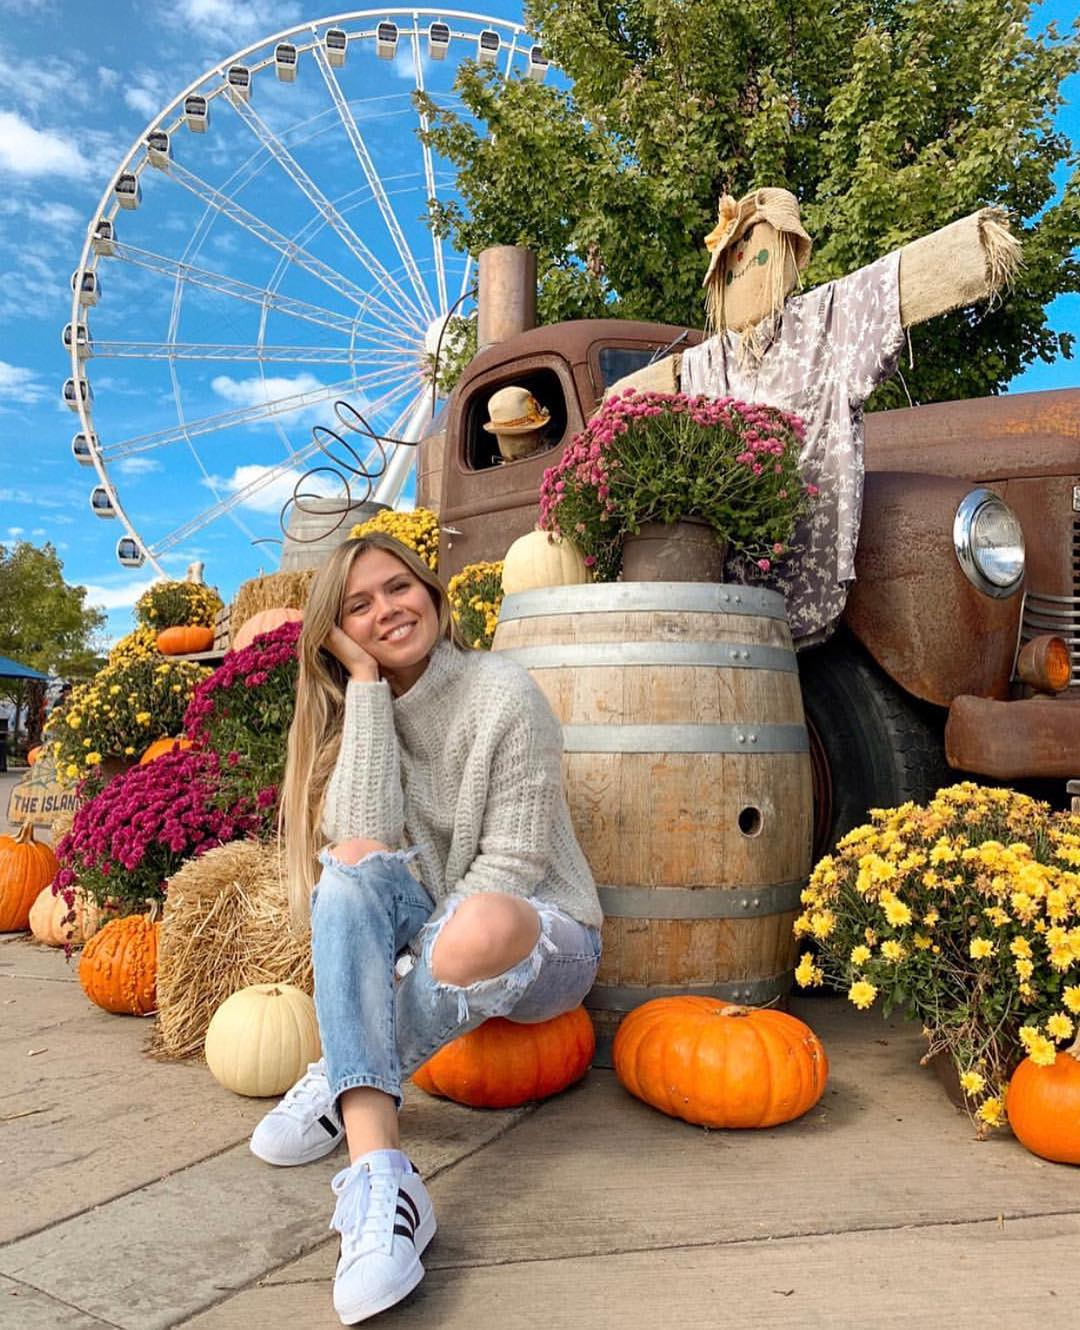 girl in sweater with fall decorations